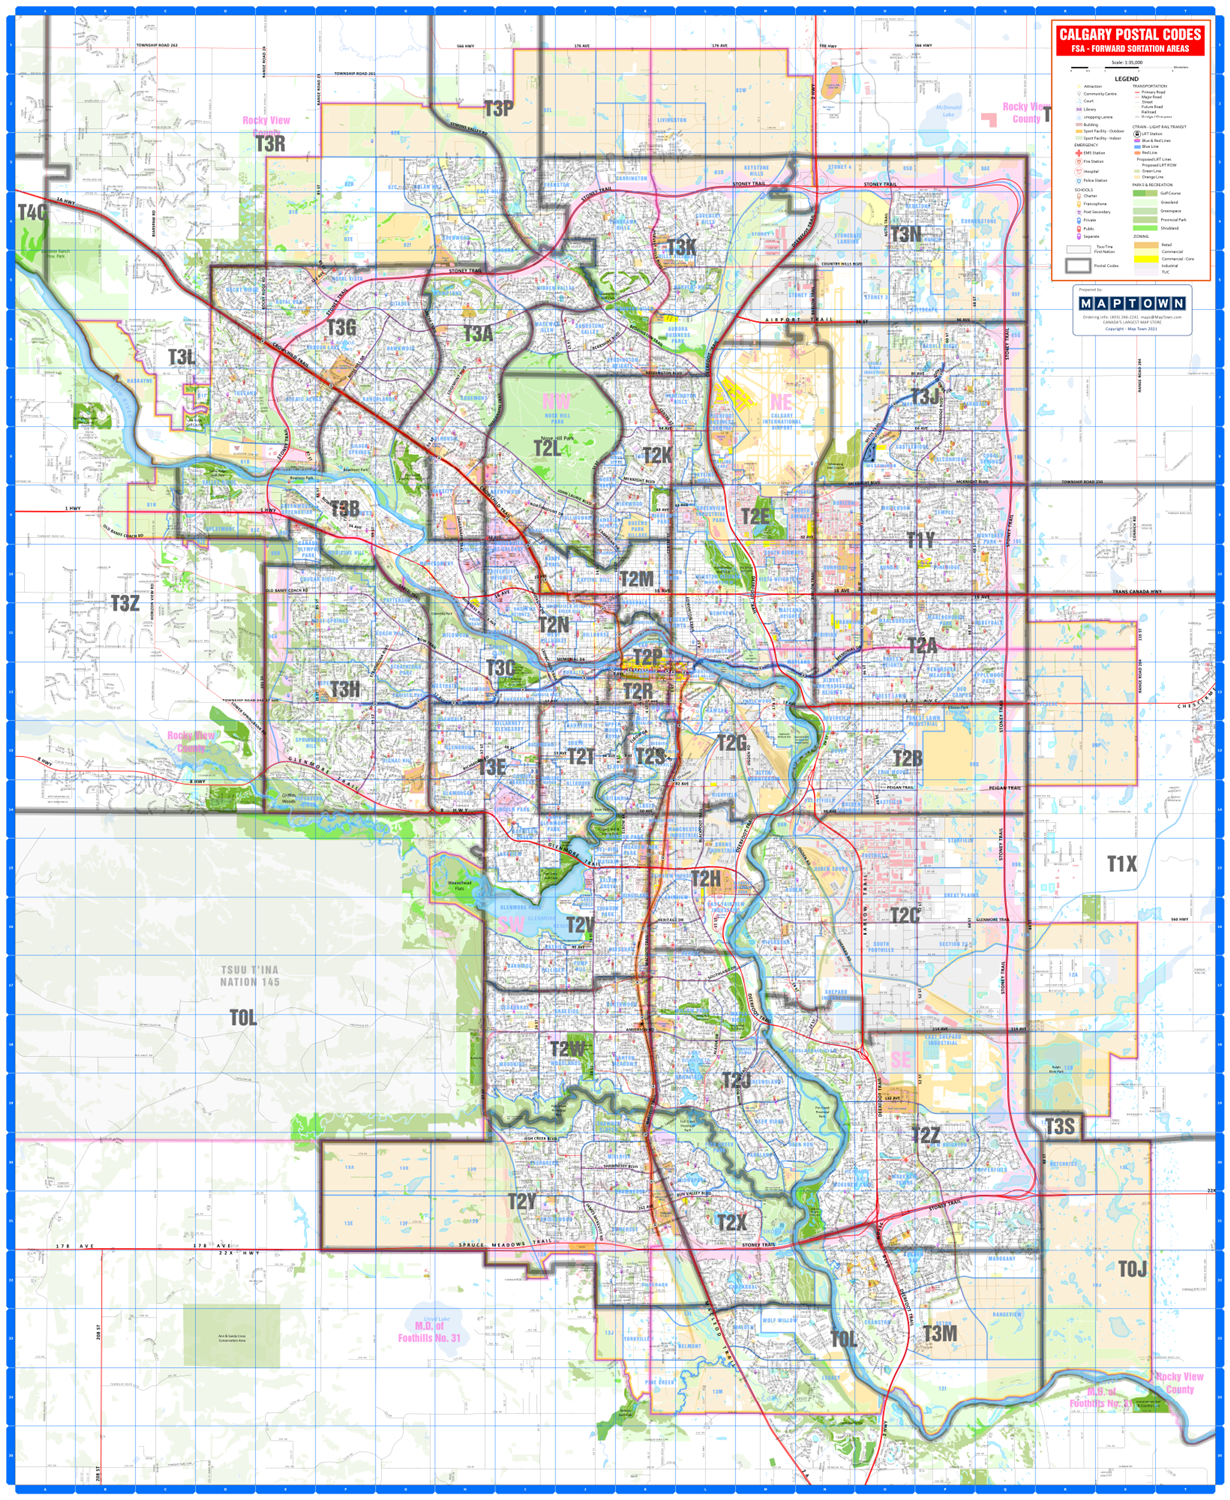 Calgary Detailed Postal Codes Wall Map New Detailed Base Map Of